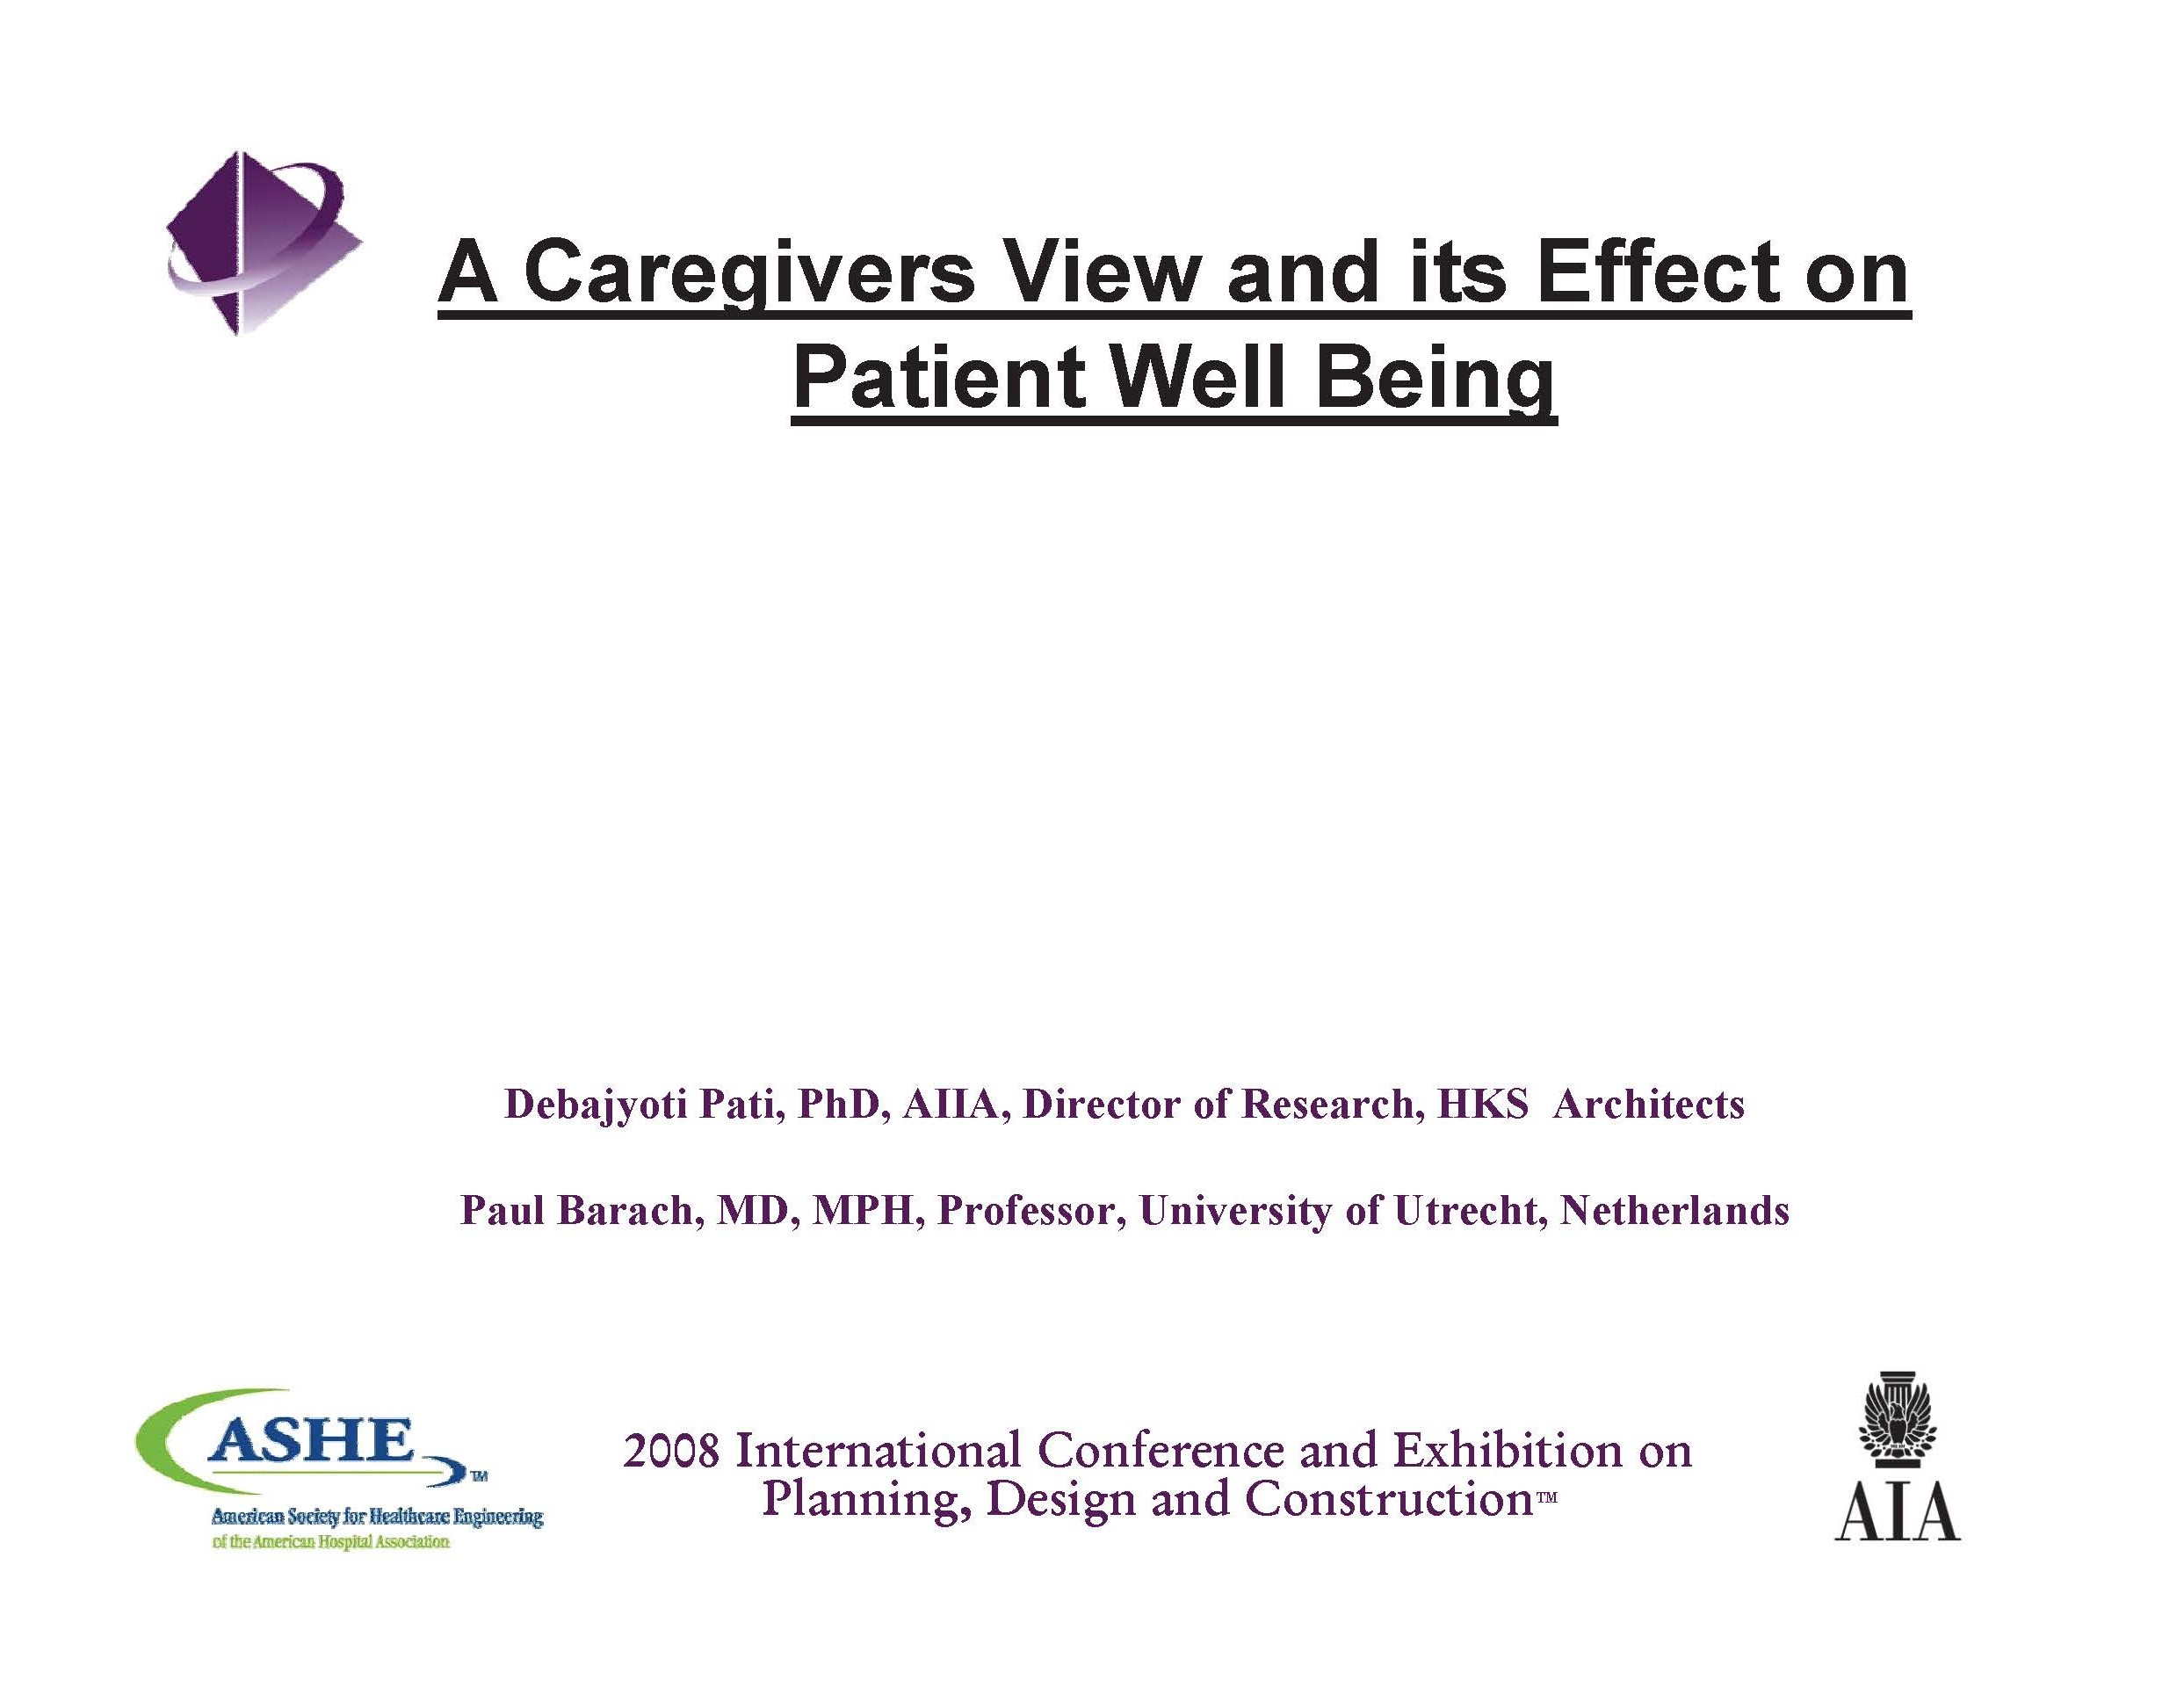 A Caregivers View and its Effect on Patient Well Being    Debajyoti Pati and Paul Barach   Healthcare Facility Planning  ,   Design, and Construction (PDC) Conference